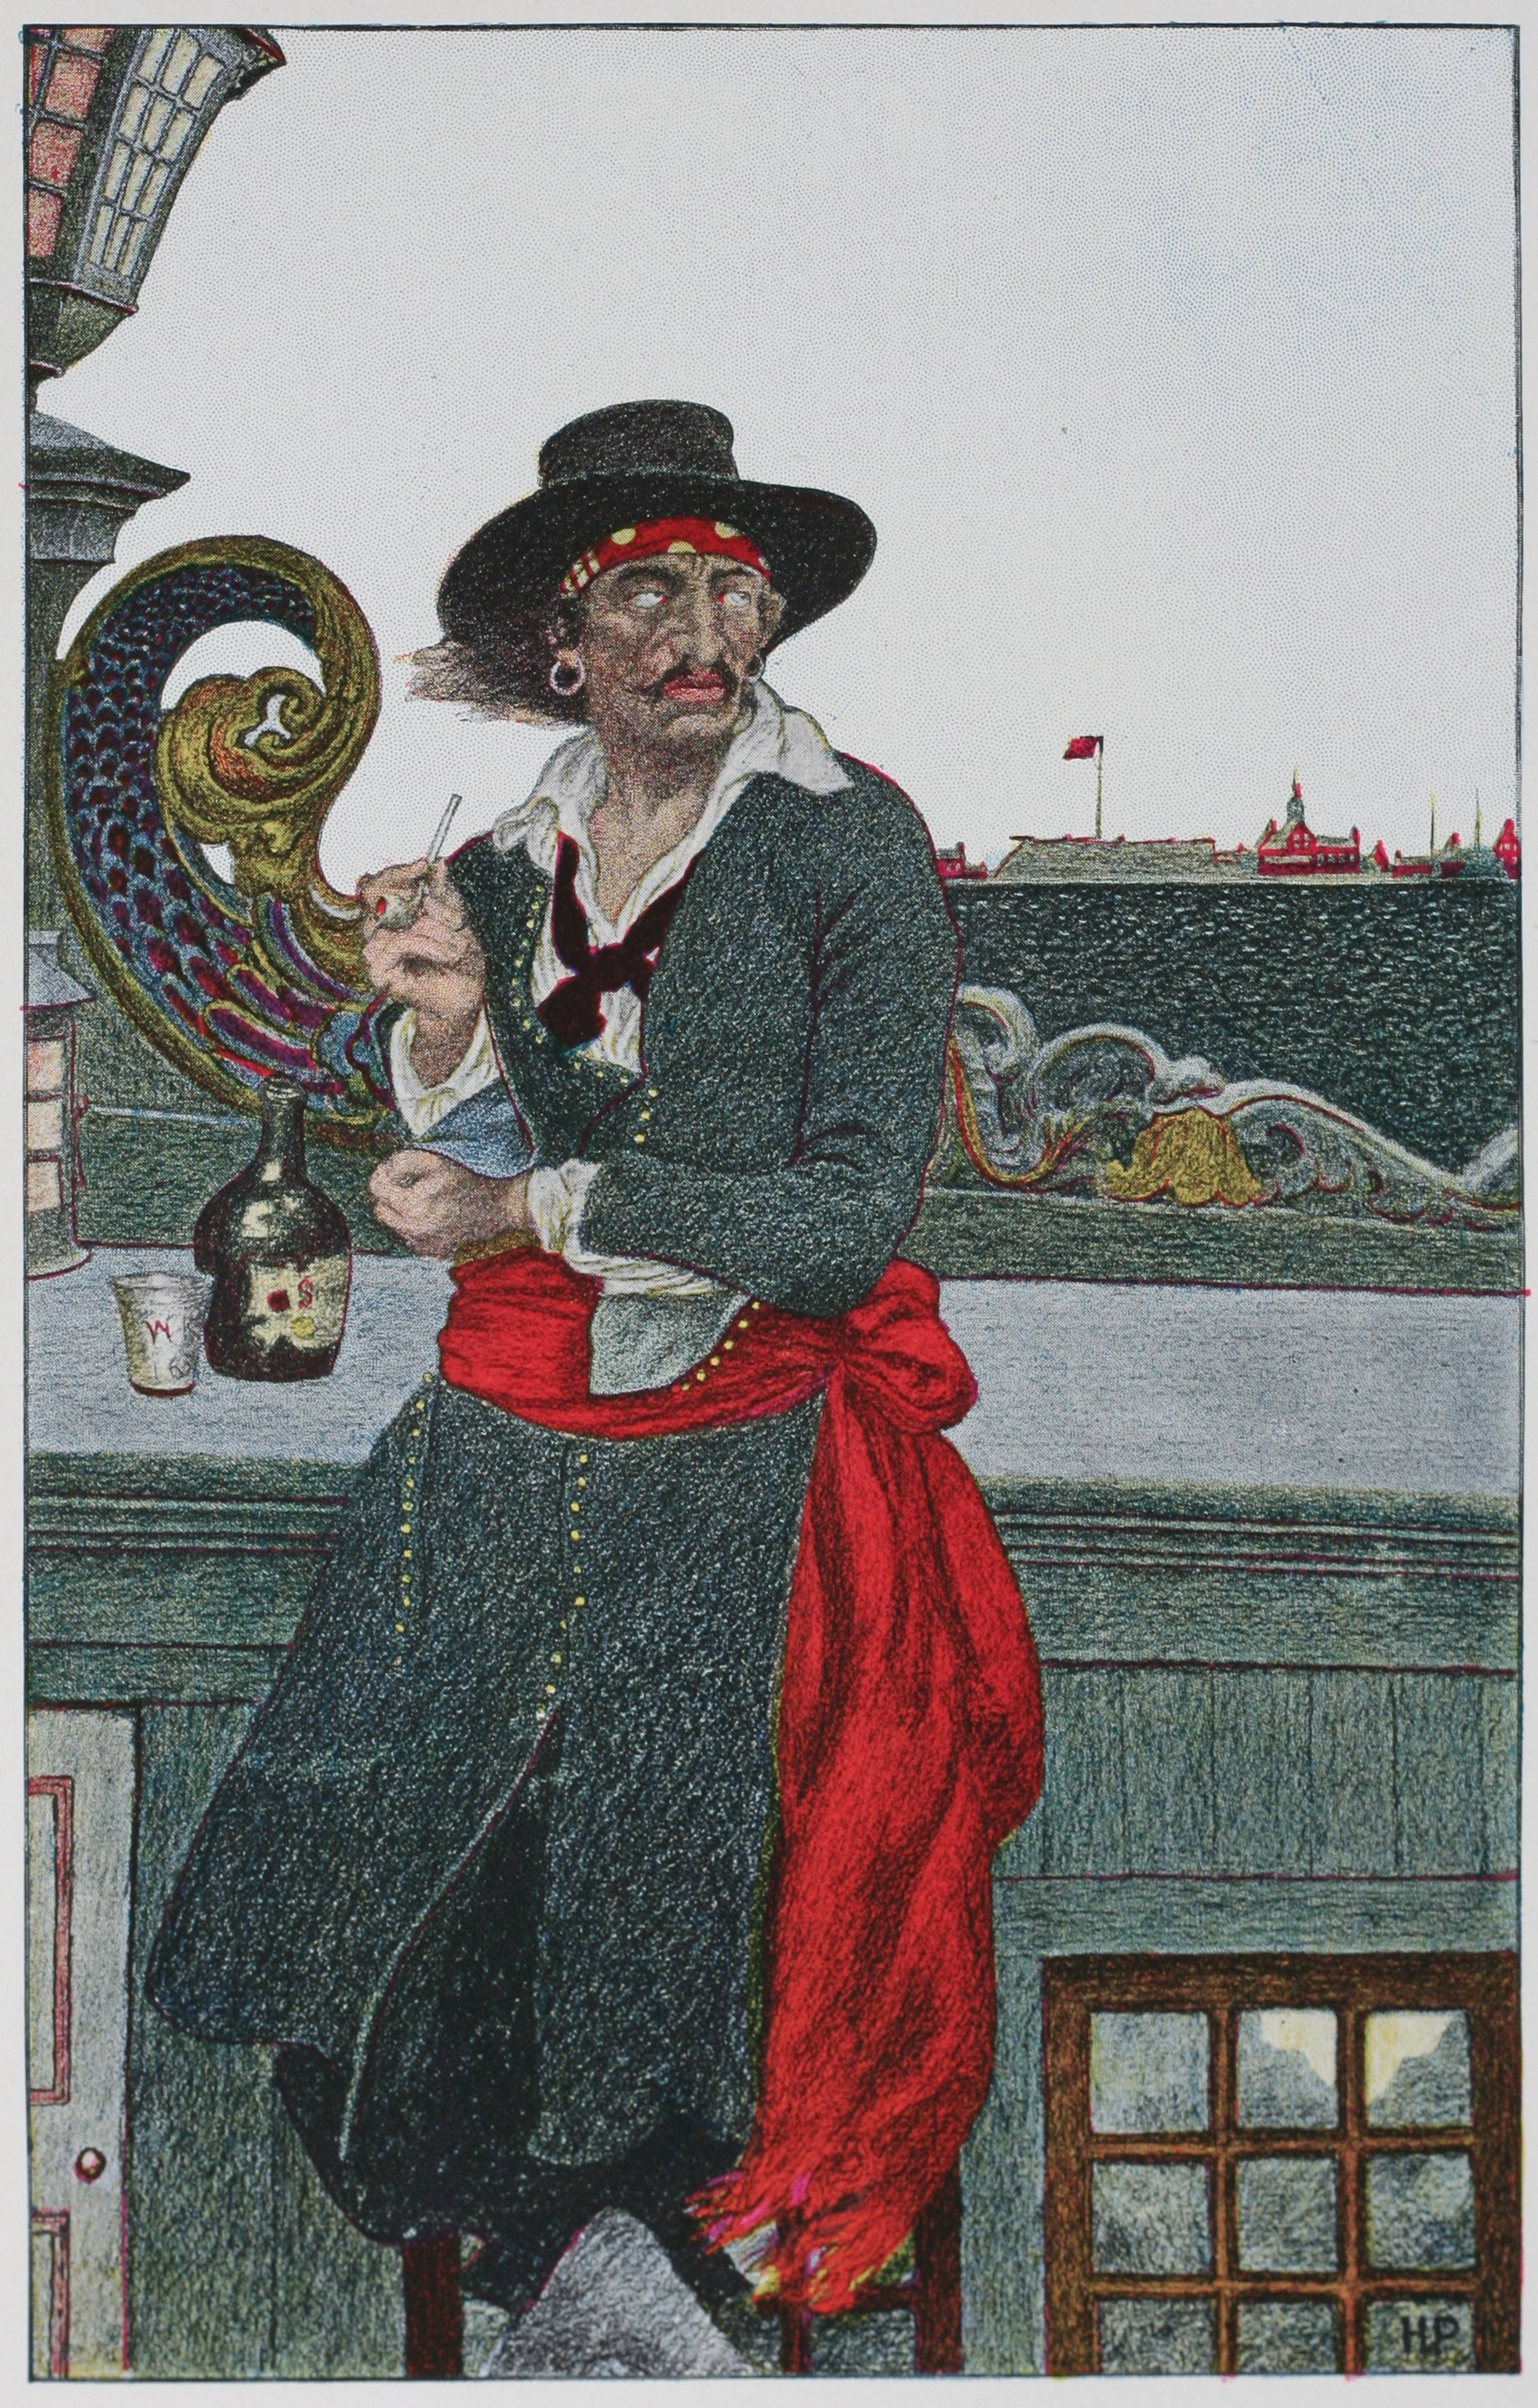 Arrrr, konnichiwa, arrr. Captain Kidd, who DIDNT visit Takarajima. A painting by Howard Pyle (stolen from wikipedia).